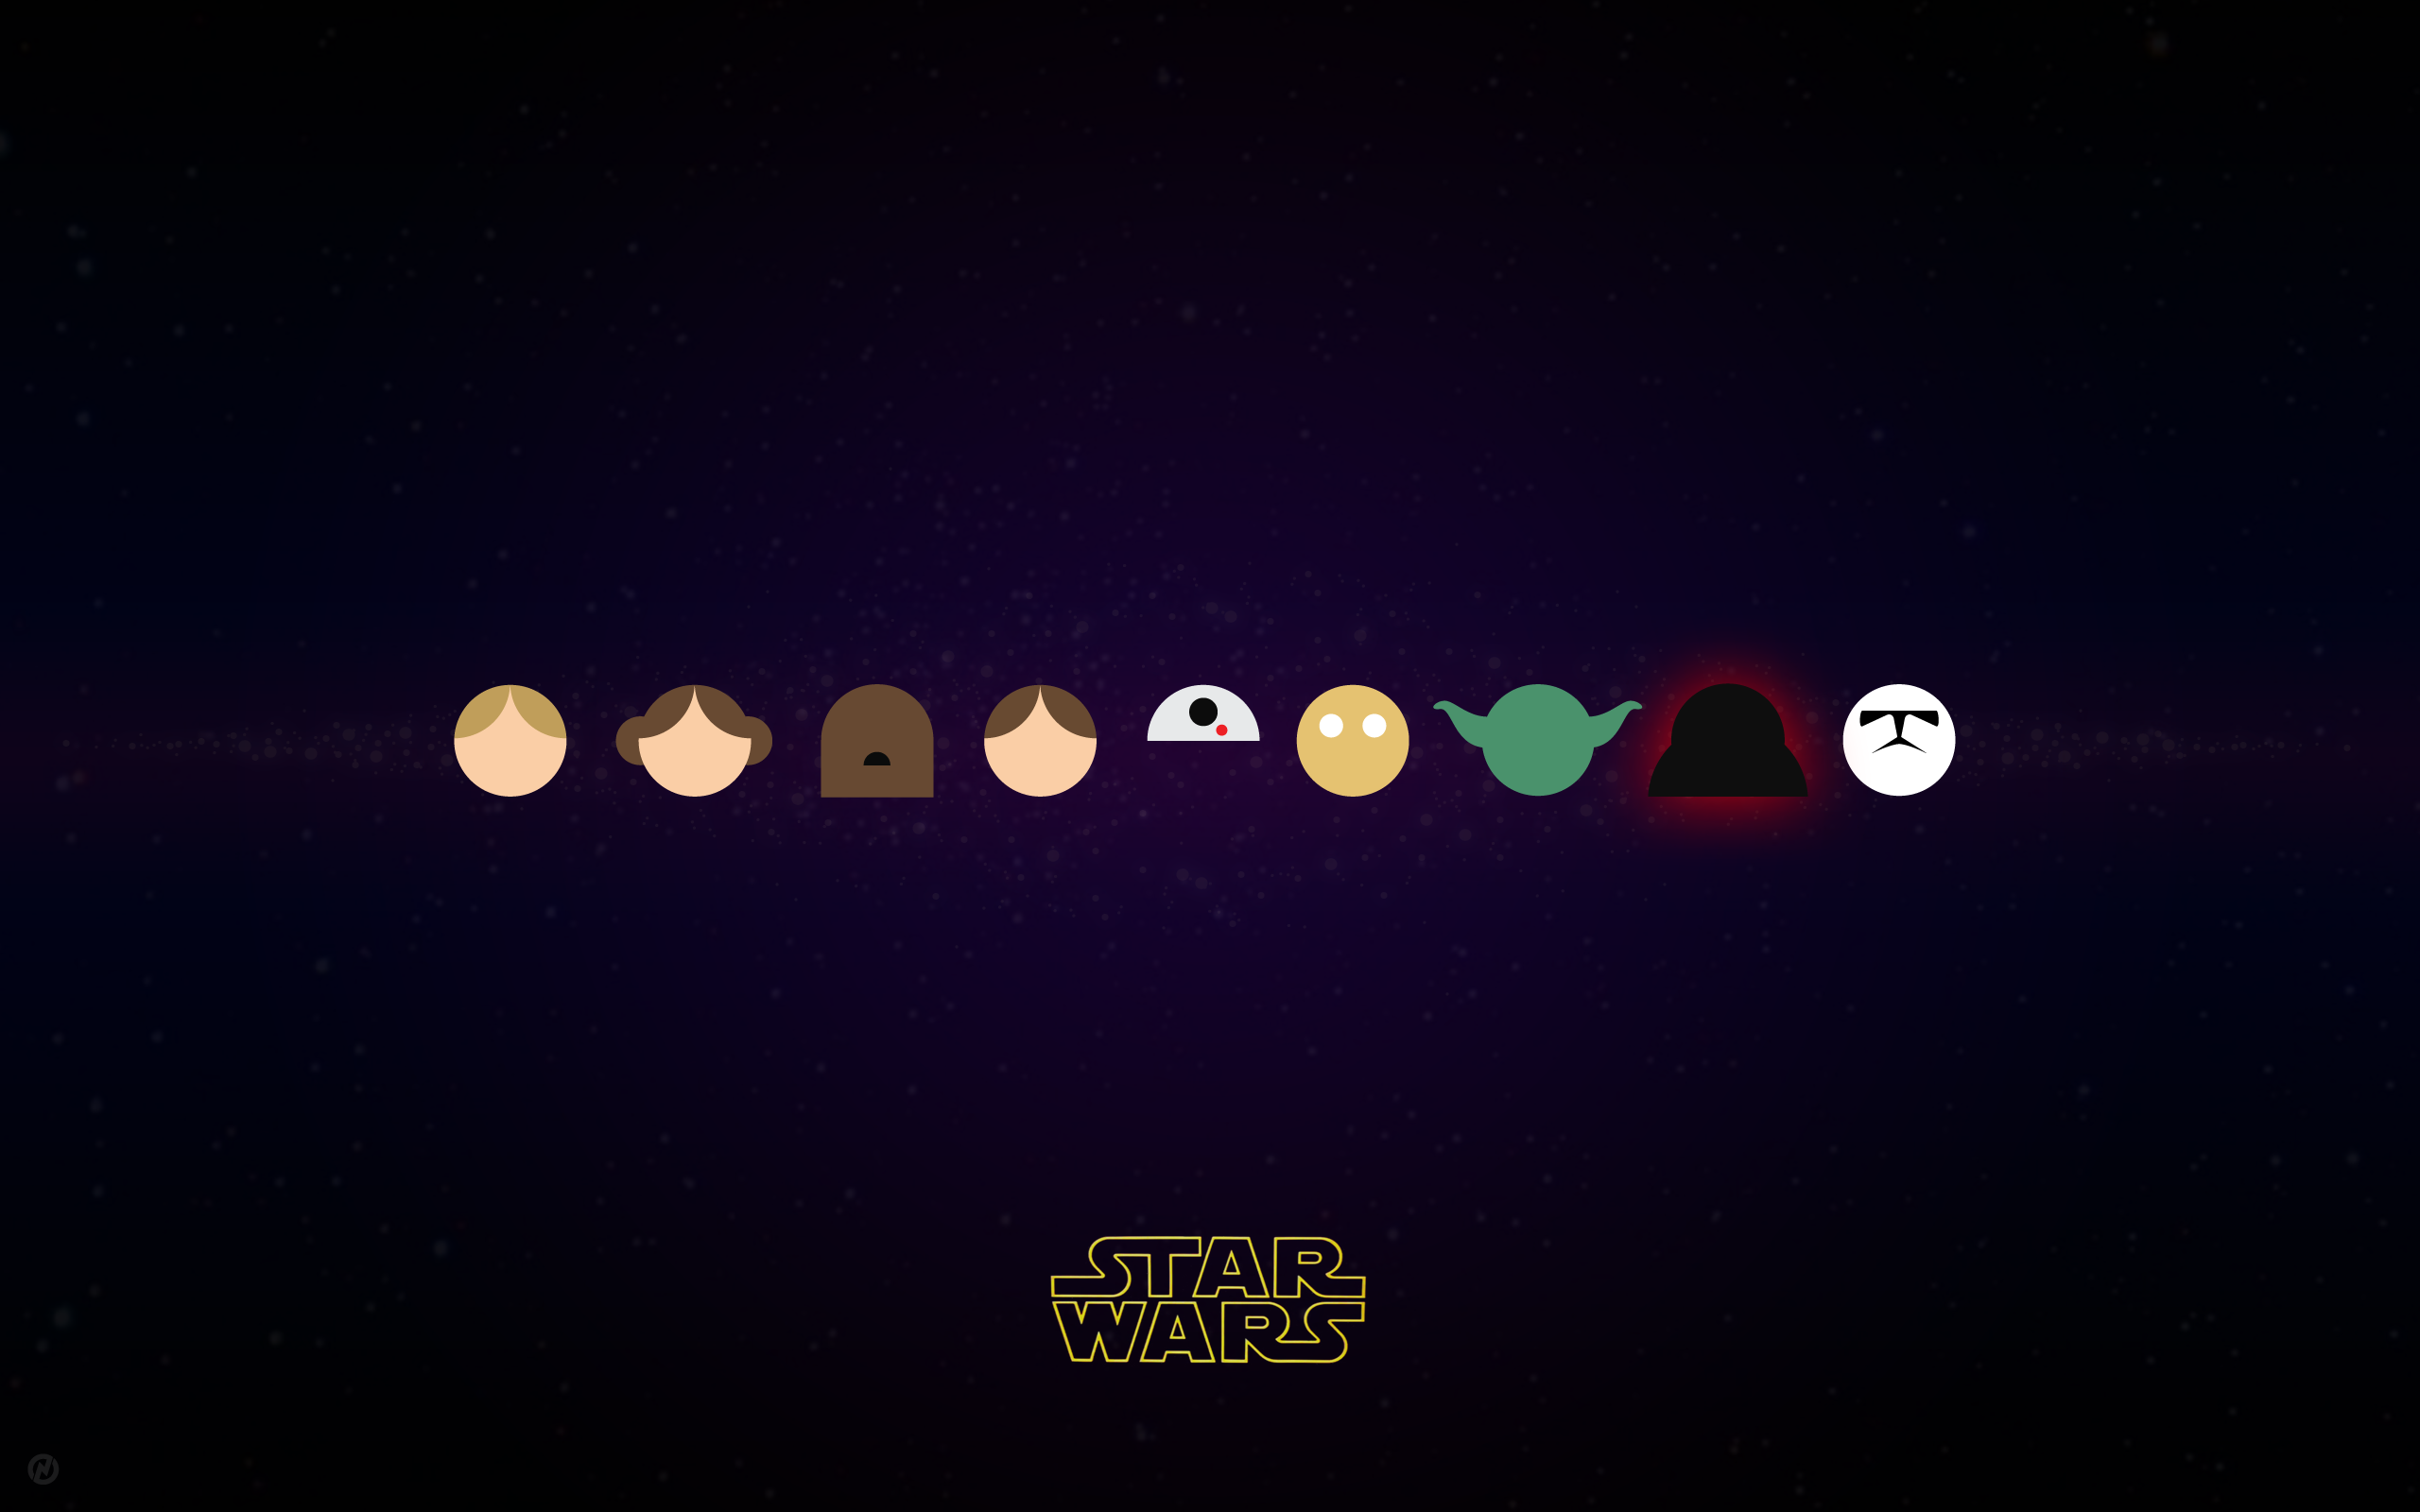 Star Wars Characters In Vector Star Wars Wallpaper Iphone Star Wars Wallpaper Star Wars Diy